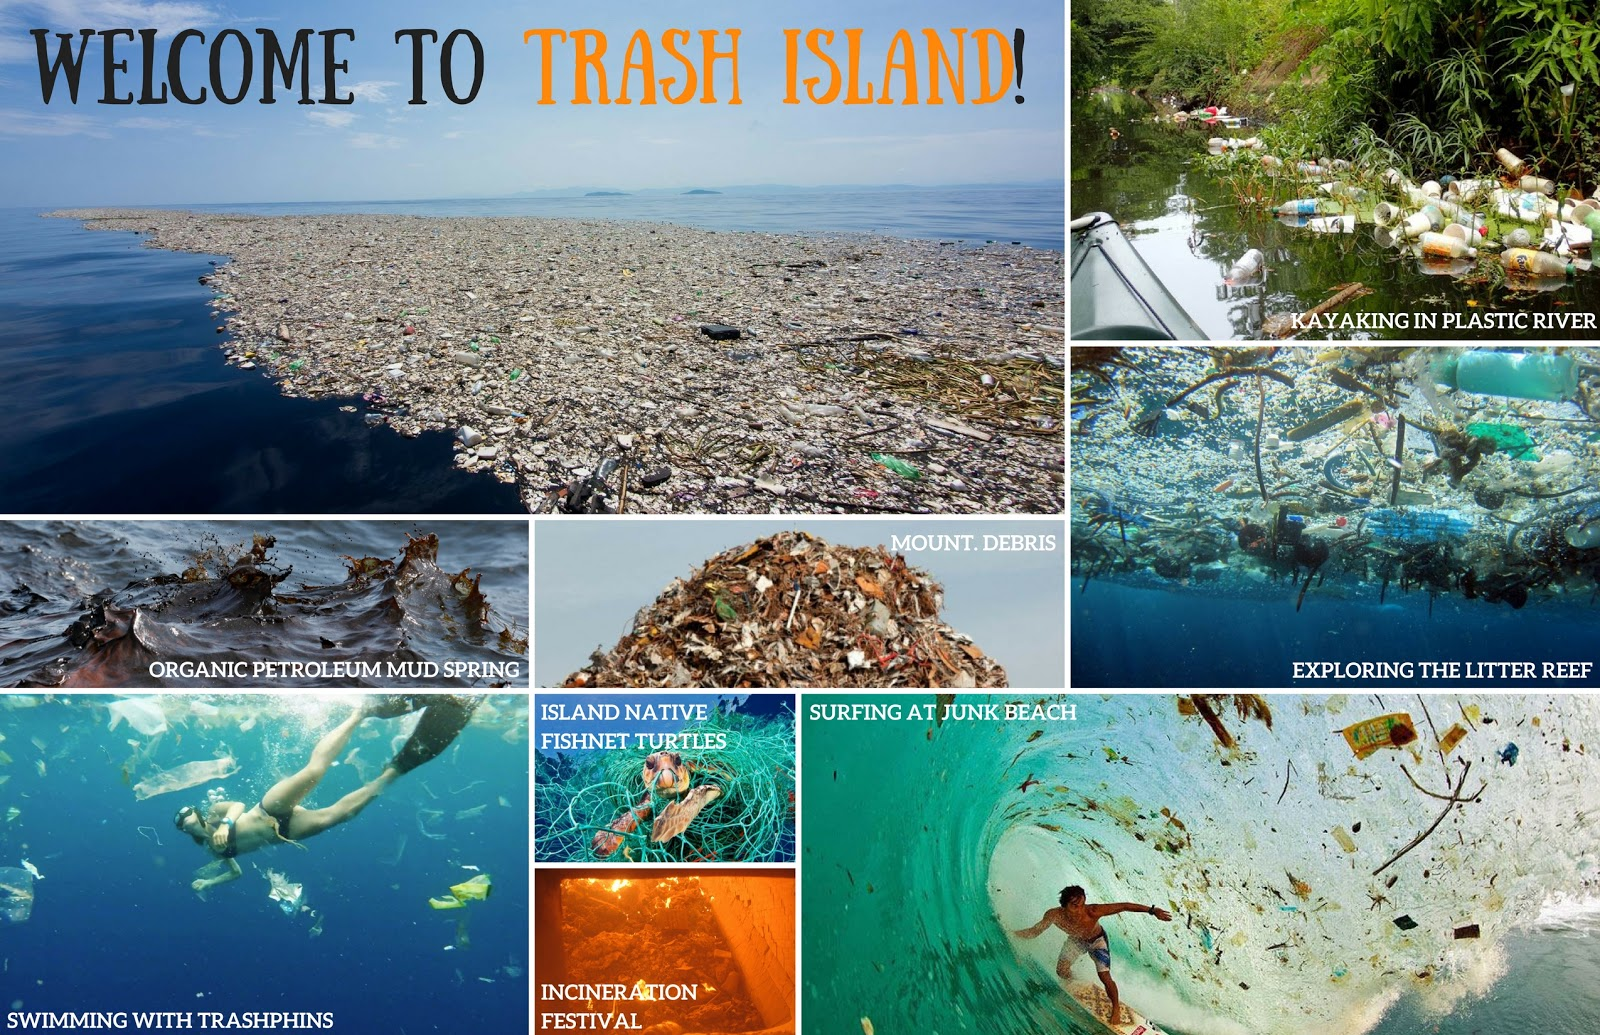 A postcard depicting various fictitious locations, including mount debris, trash island, litter reef, petroleum mud spring, and various events, like kayaking in the plastic river, swimming with trash, the incineration festival and surfing at junk beach.